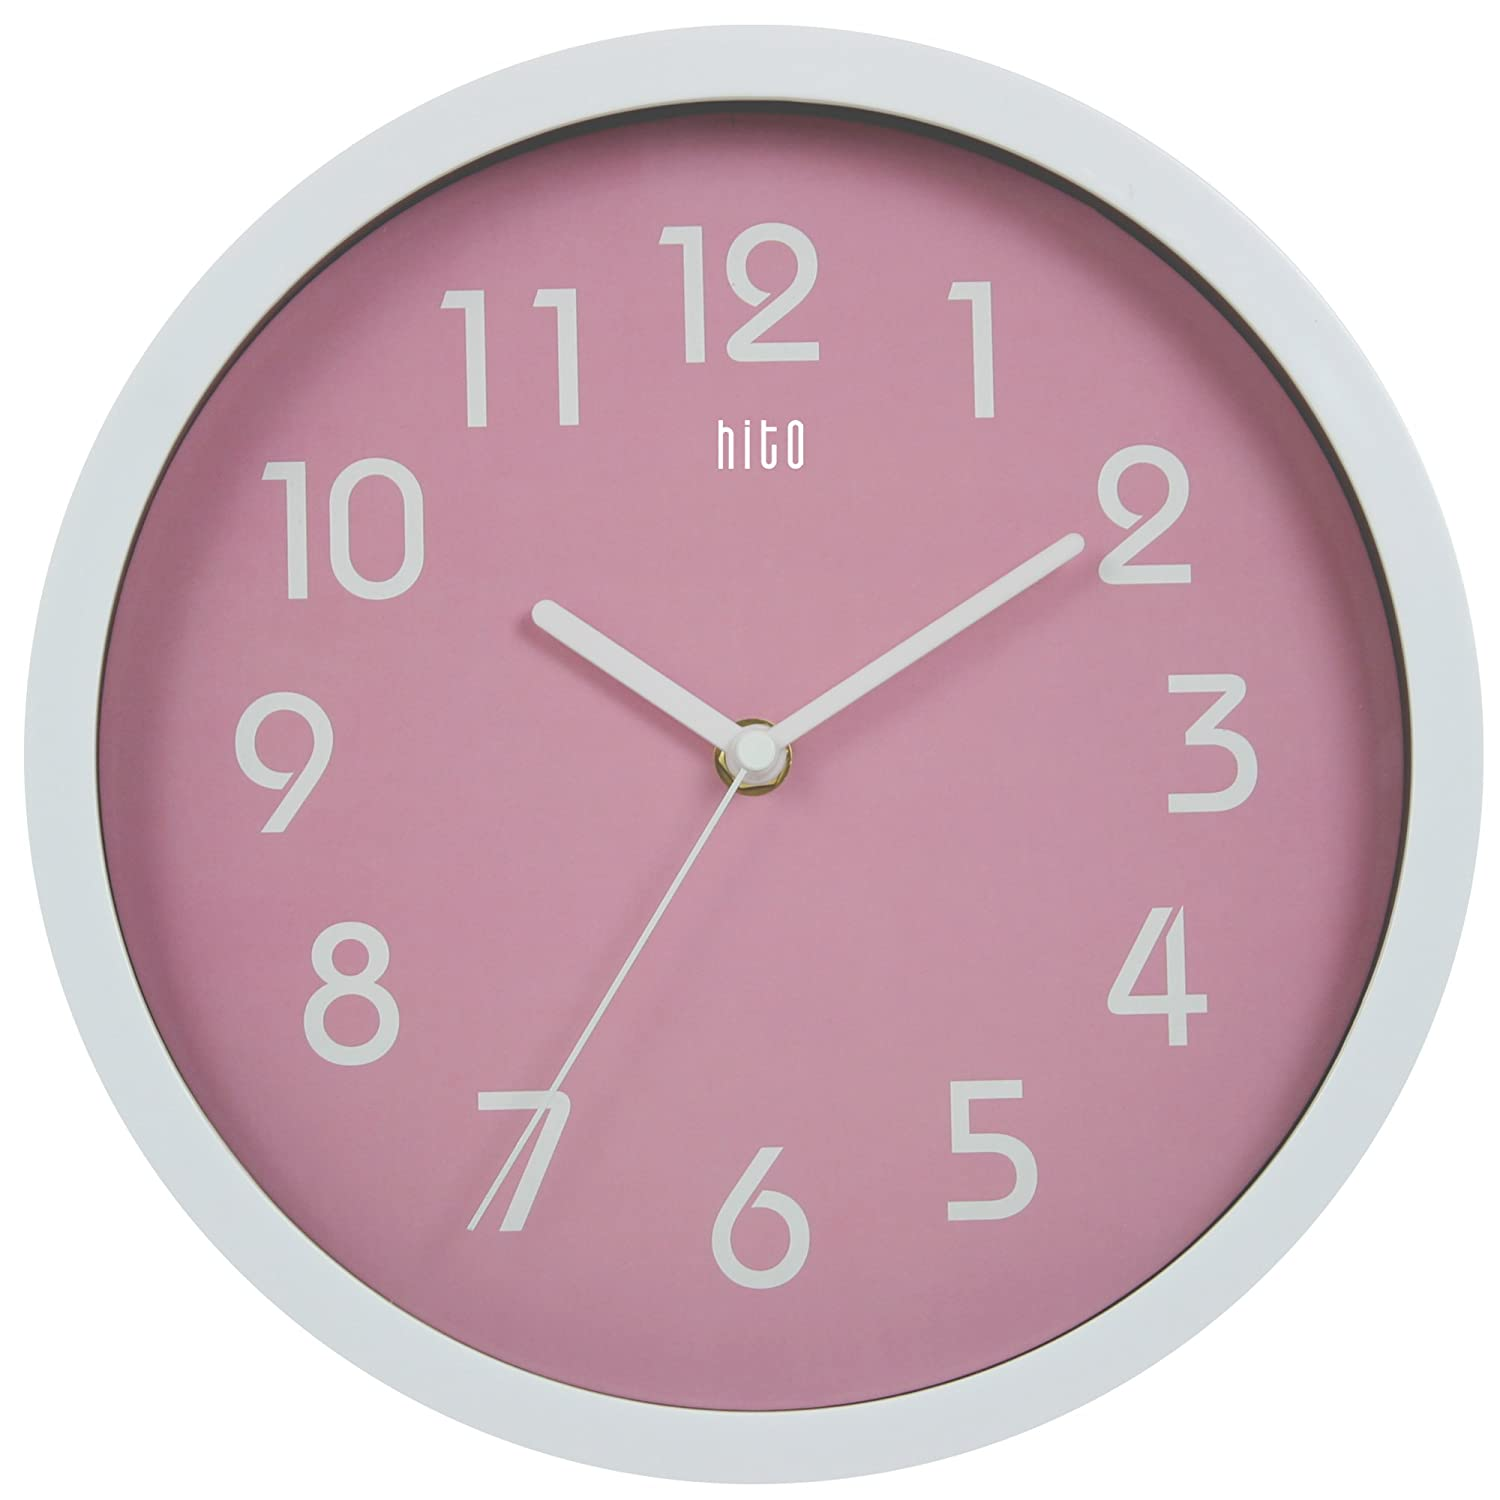 Amazon hitotm modern colorful silent non ticking wall clock amazon hitotm modern colorful silent non ticking wall clock 10 inches pink home kitchen amipublicfo Gallery